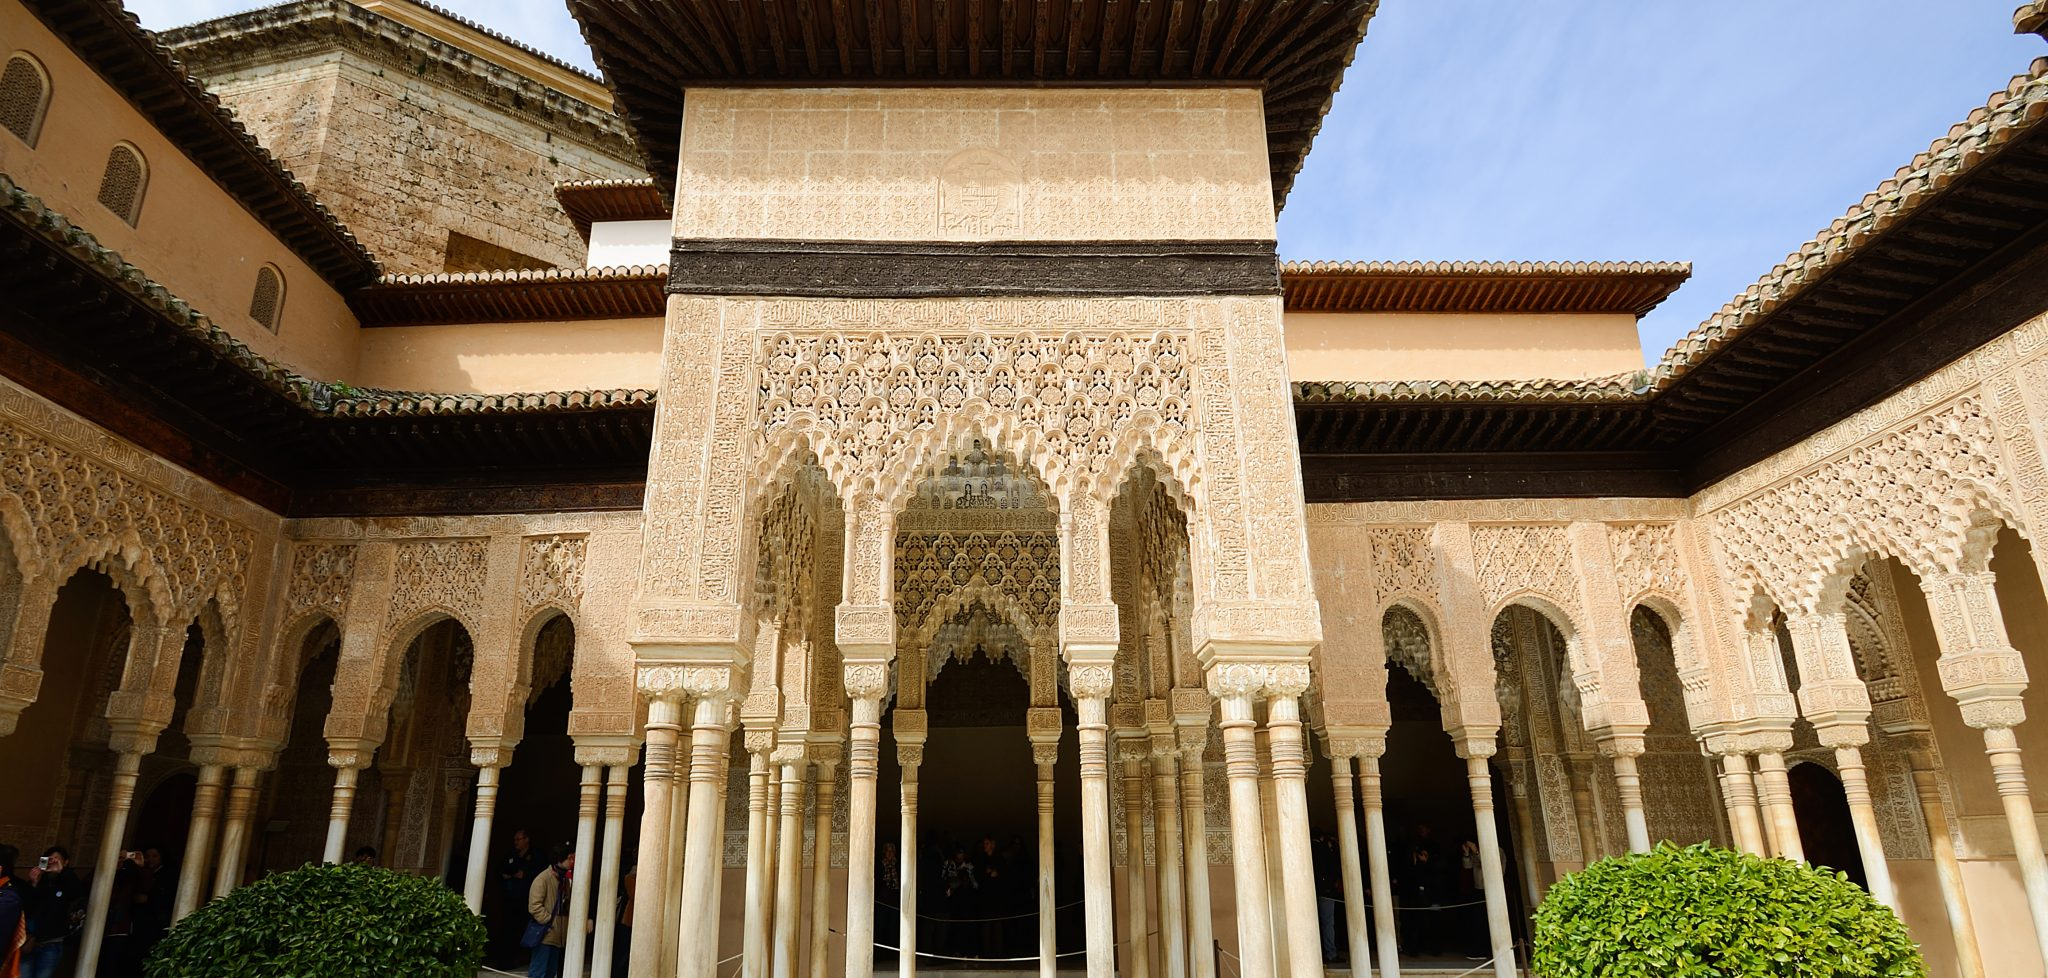 Courtyard of the Lions (El Patio de los Leones) in the Alhambra a moorish mosque, palace and fortress complex in Granada, Spain.